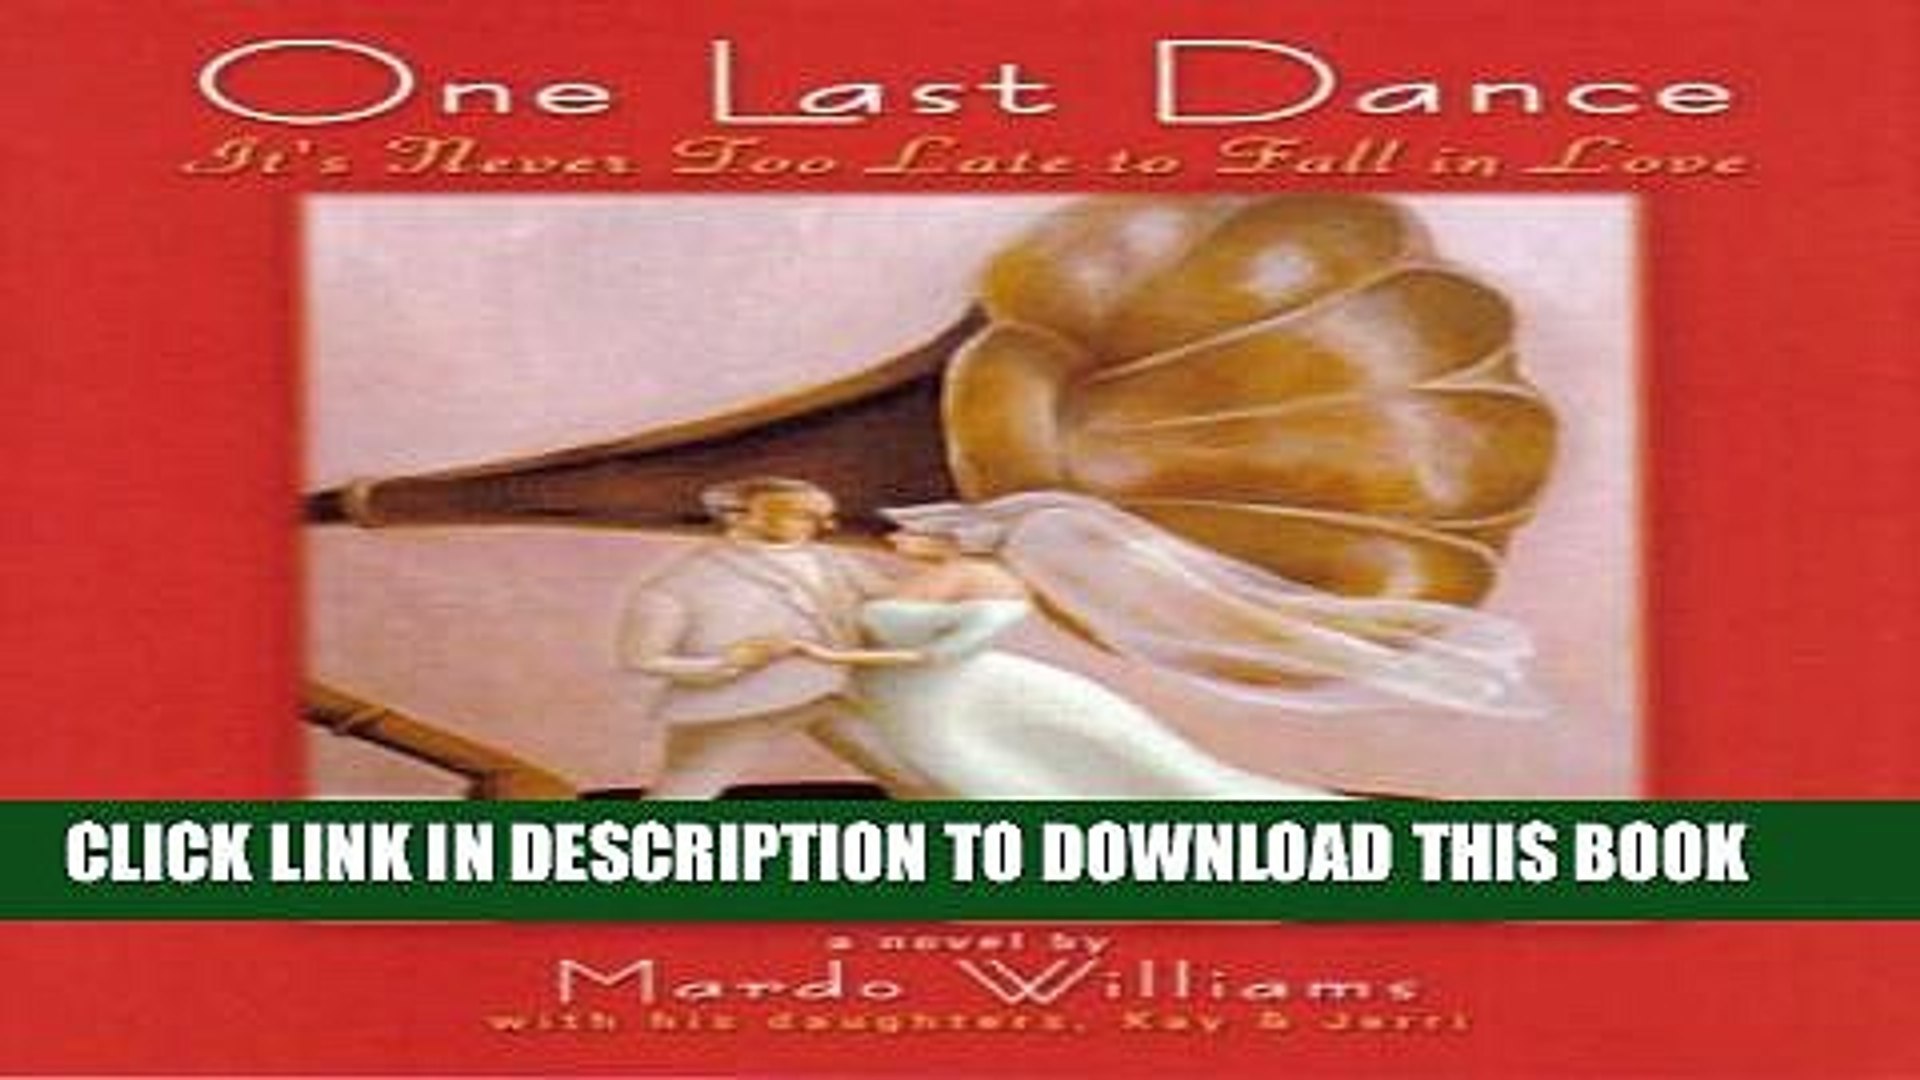 [PDF] FREE One Last Dance: It s Never Too Late to Fall in Love [Download] Online